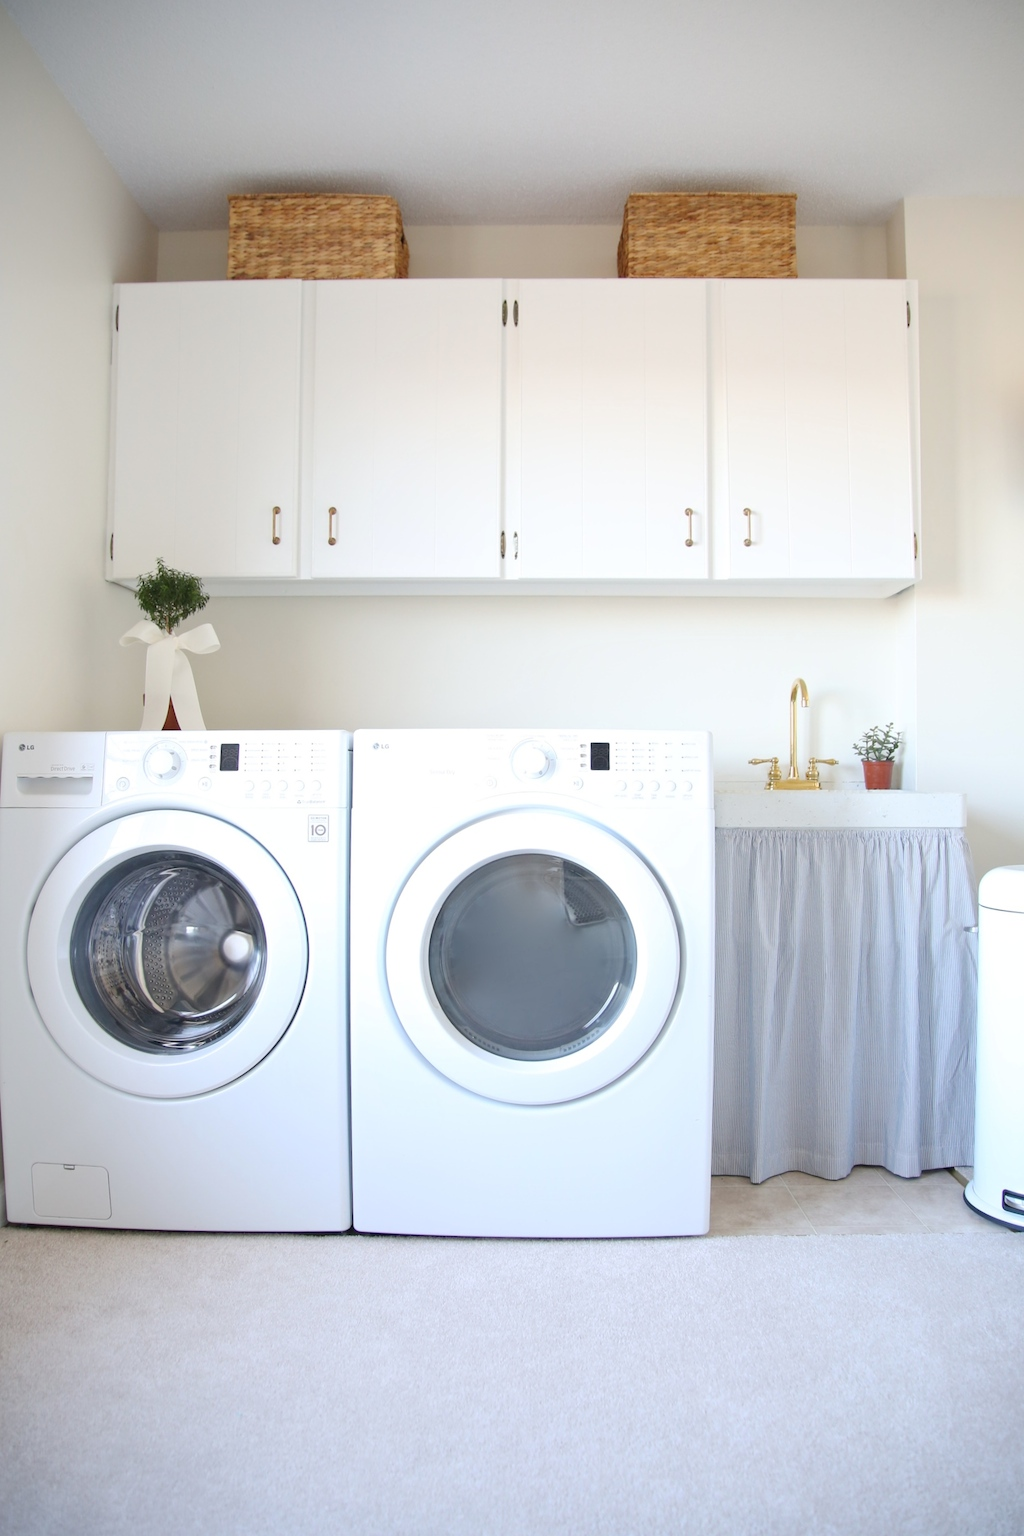 Design Small Laundry Rooms 25 small laundry room ideas home stories a to z decorations